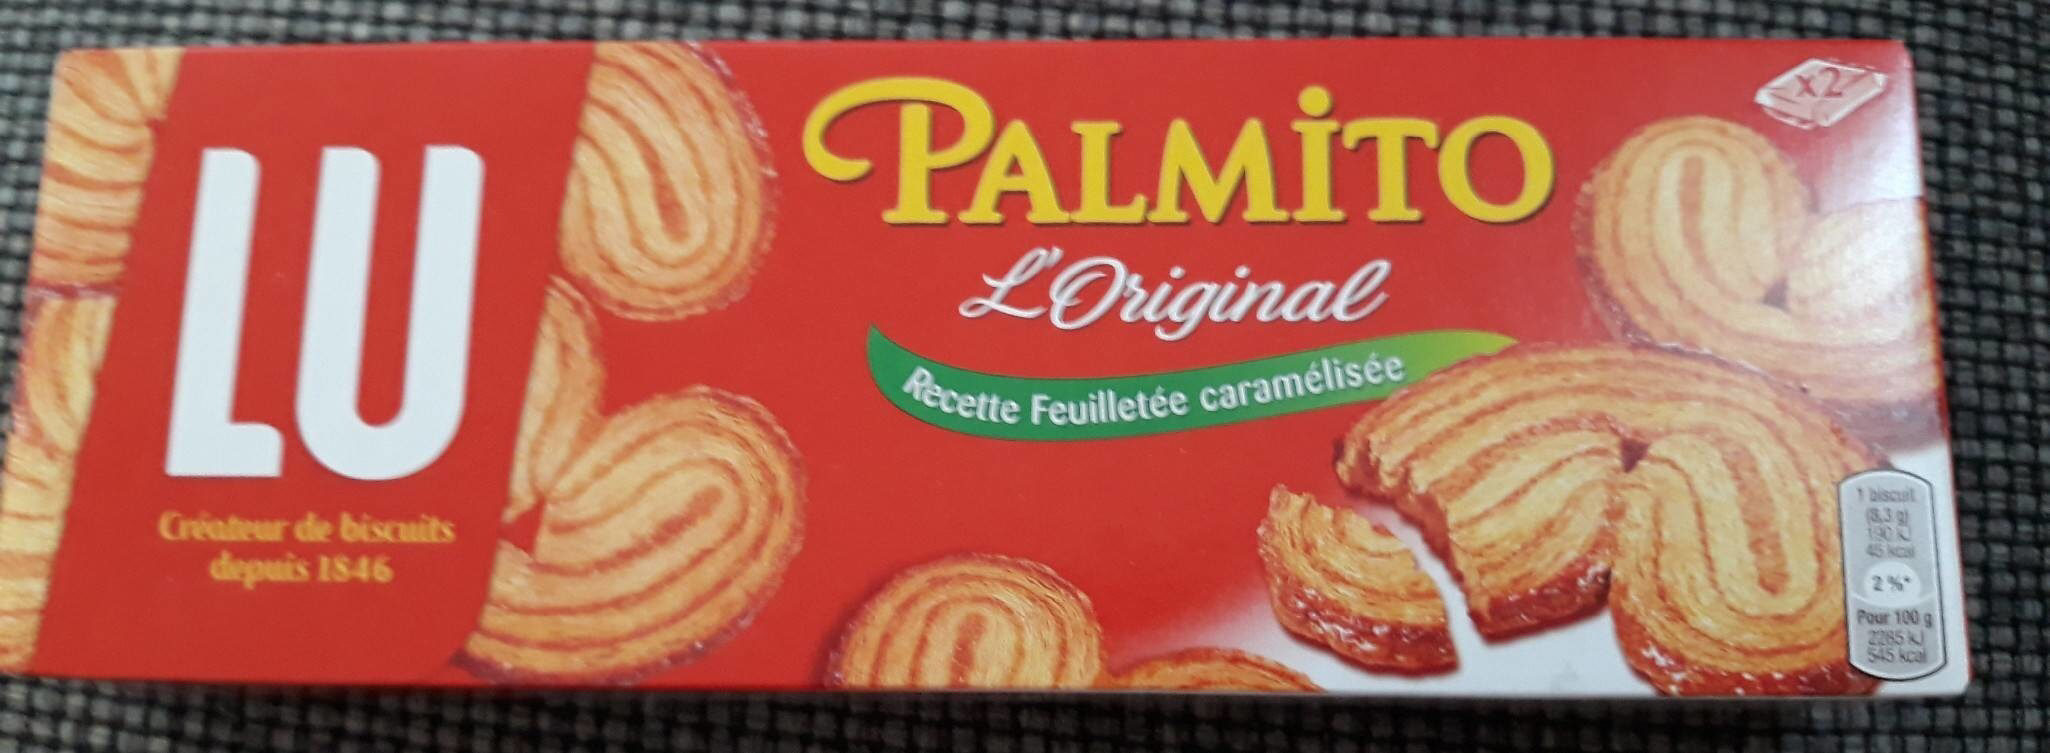 Palmito L'original - Ingredients